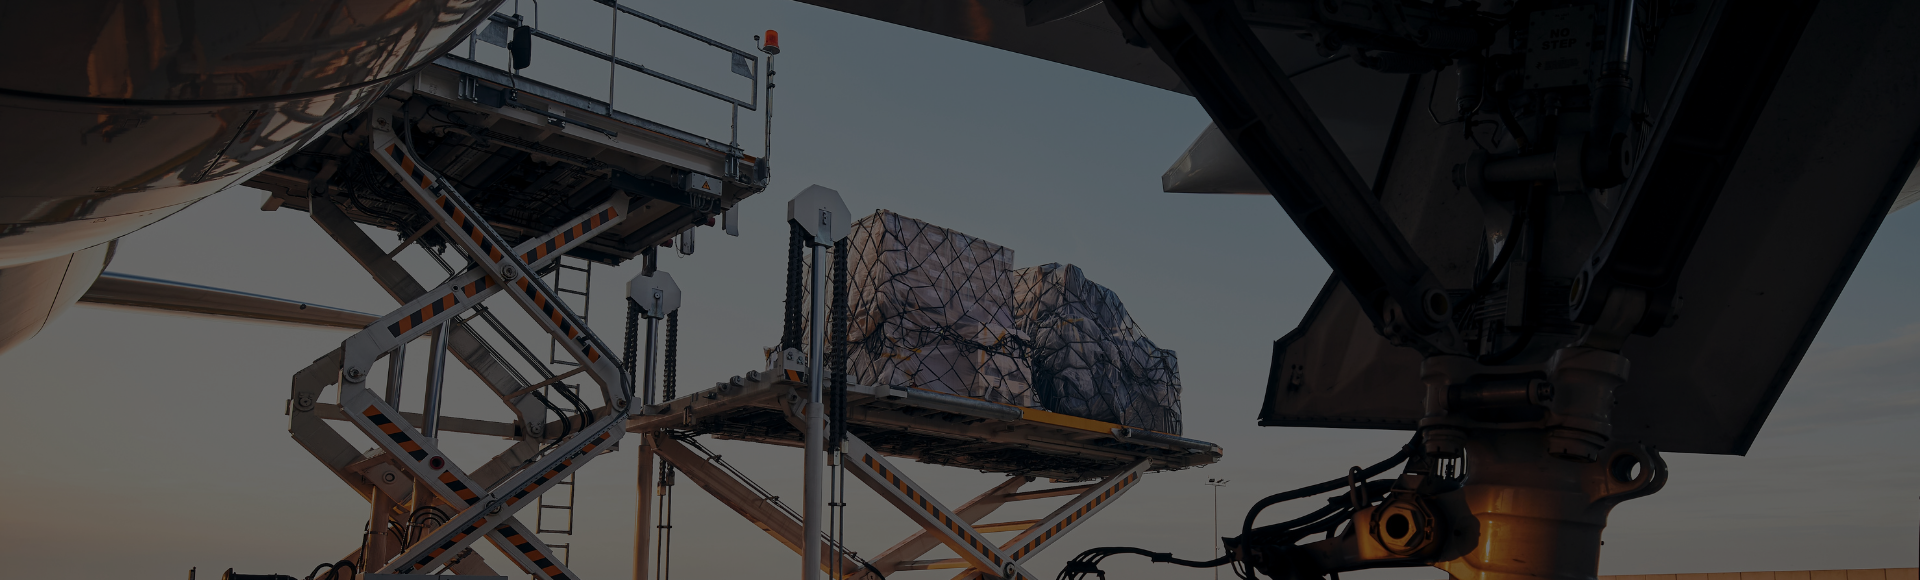 pcb freight management